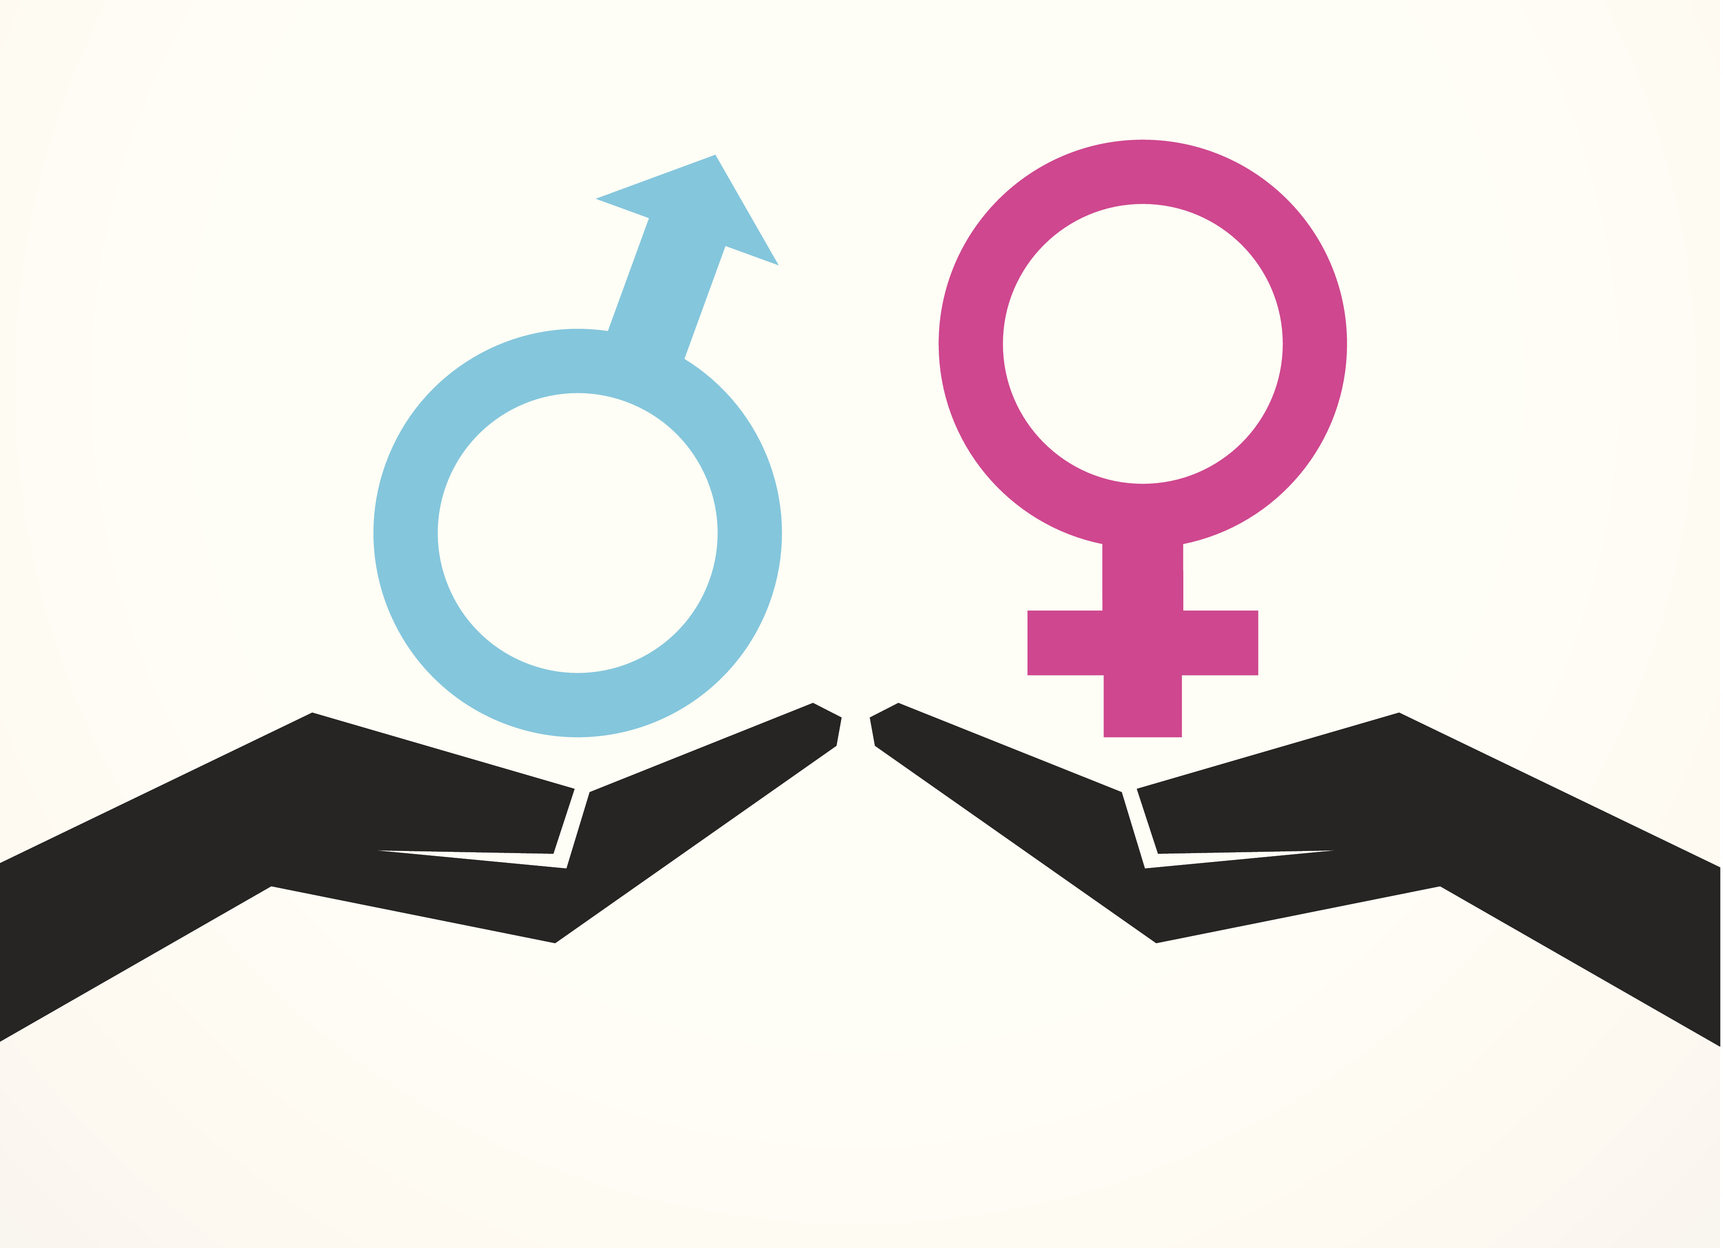 gender identity development Gender identity one's innermost concept of self as male, female, a blend of both or neither – how individuals perceive themselves and what they call themselves one's gender identity can be the same or different from their sex assigned at birth.